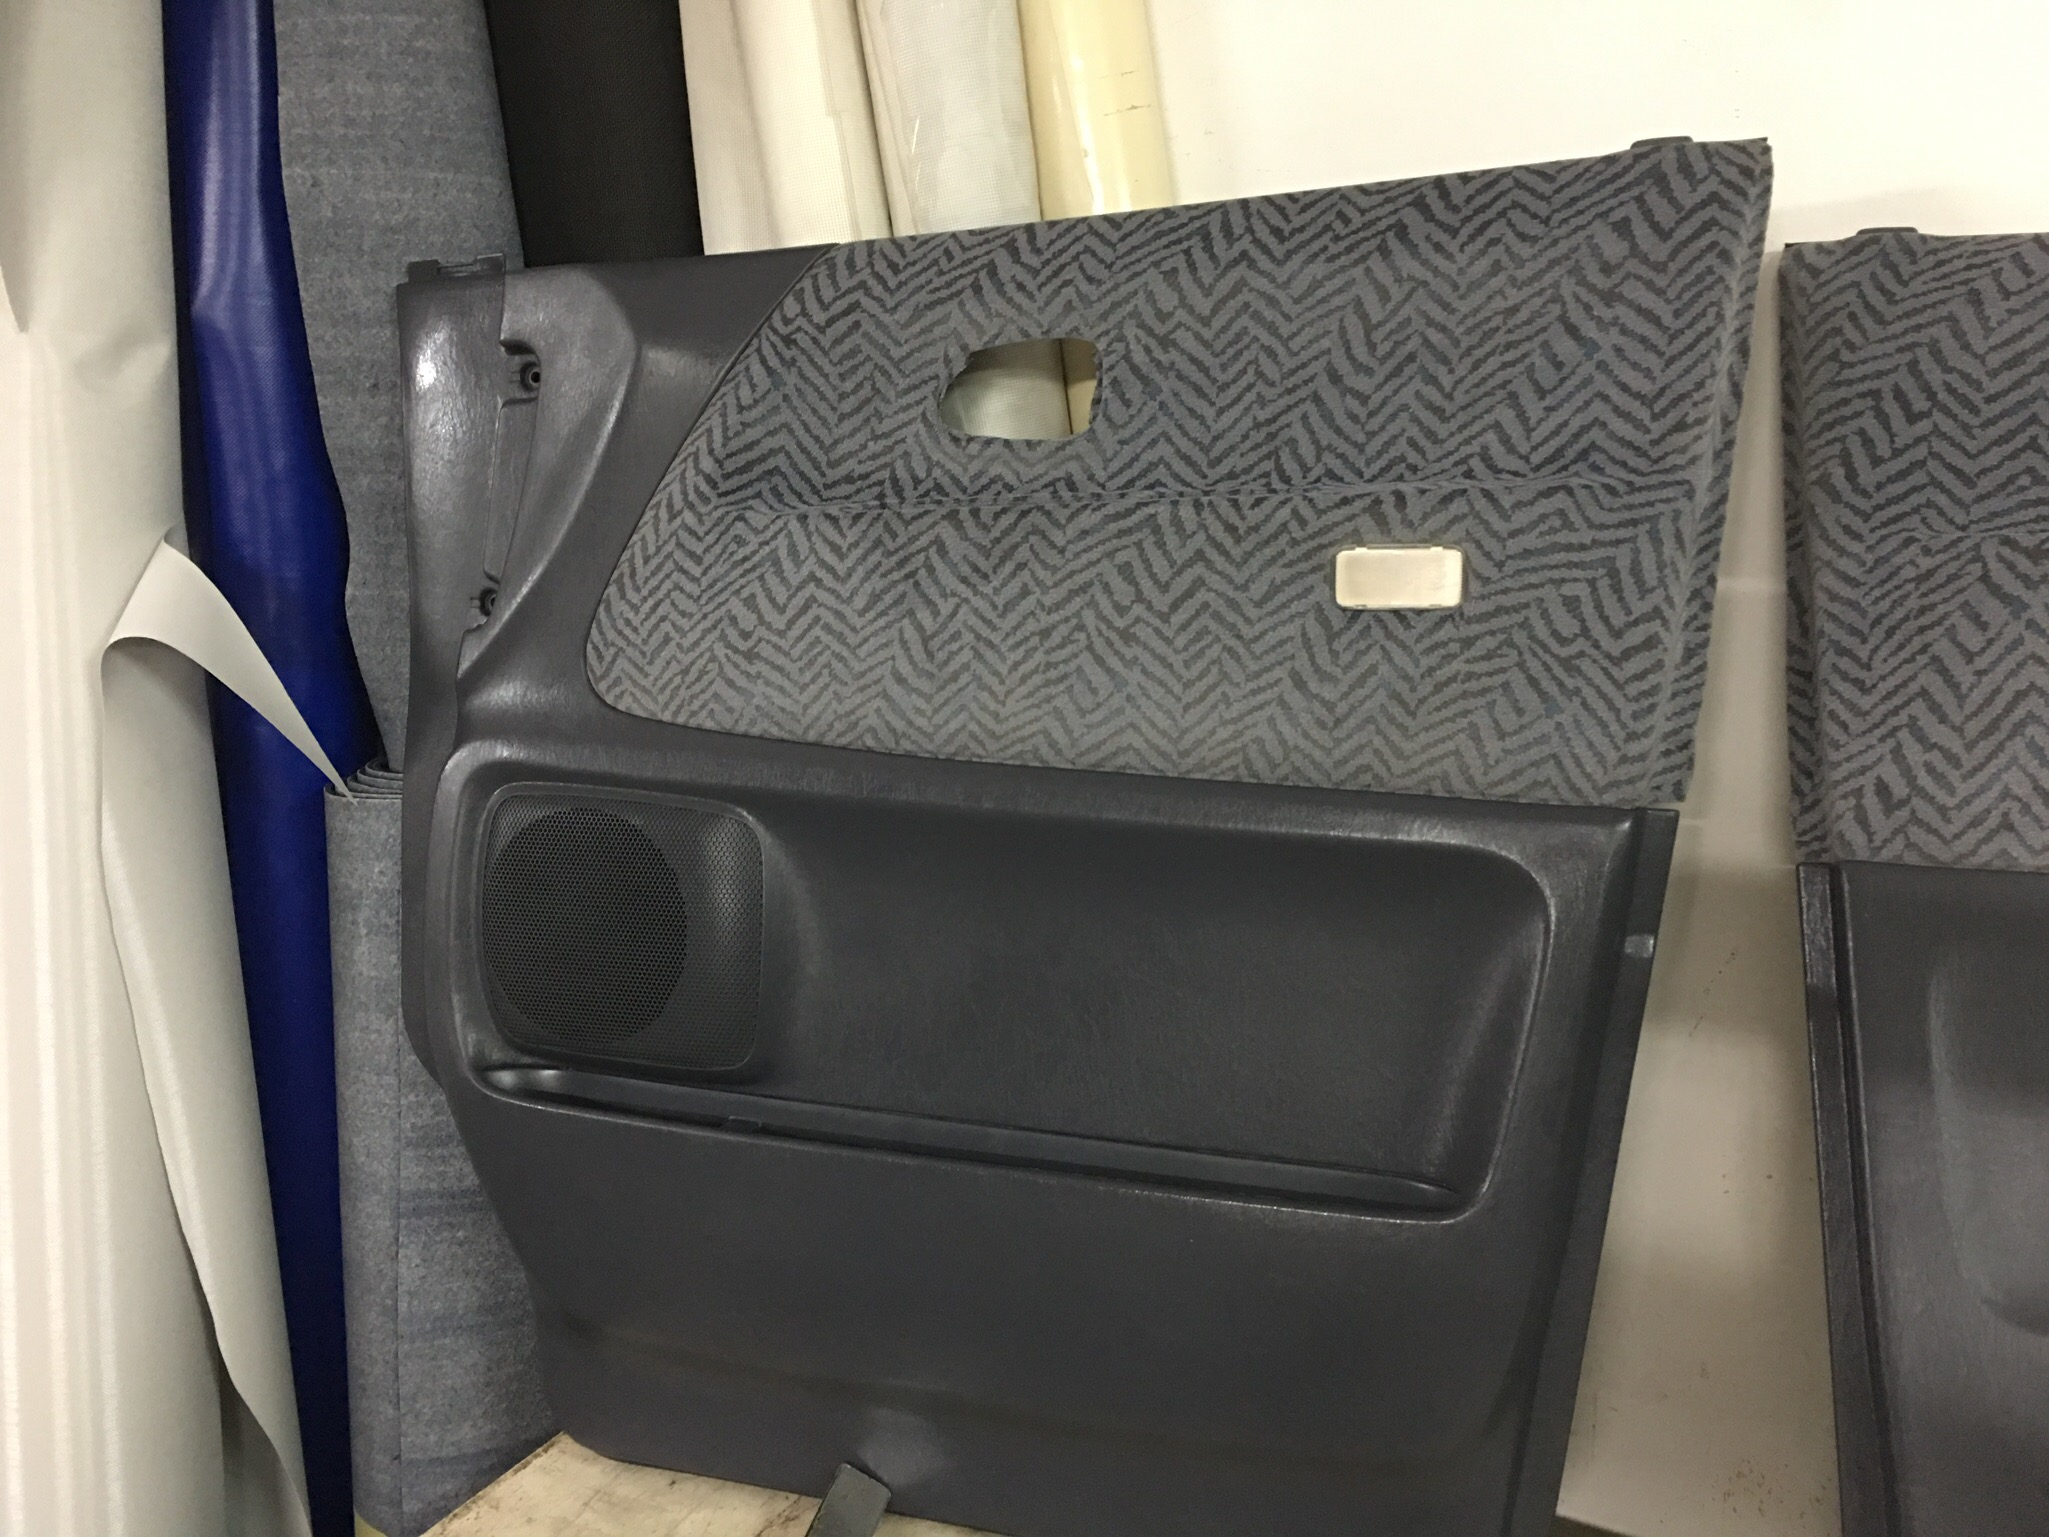 Car Upholstery : door upholstery - pezcame.com